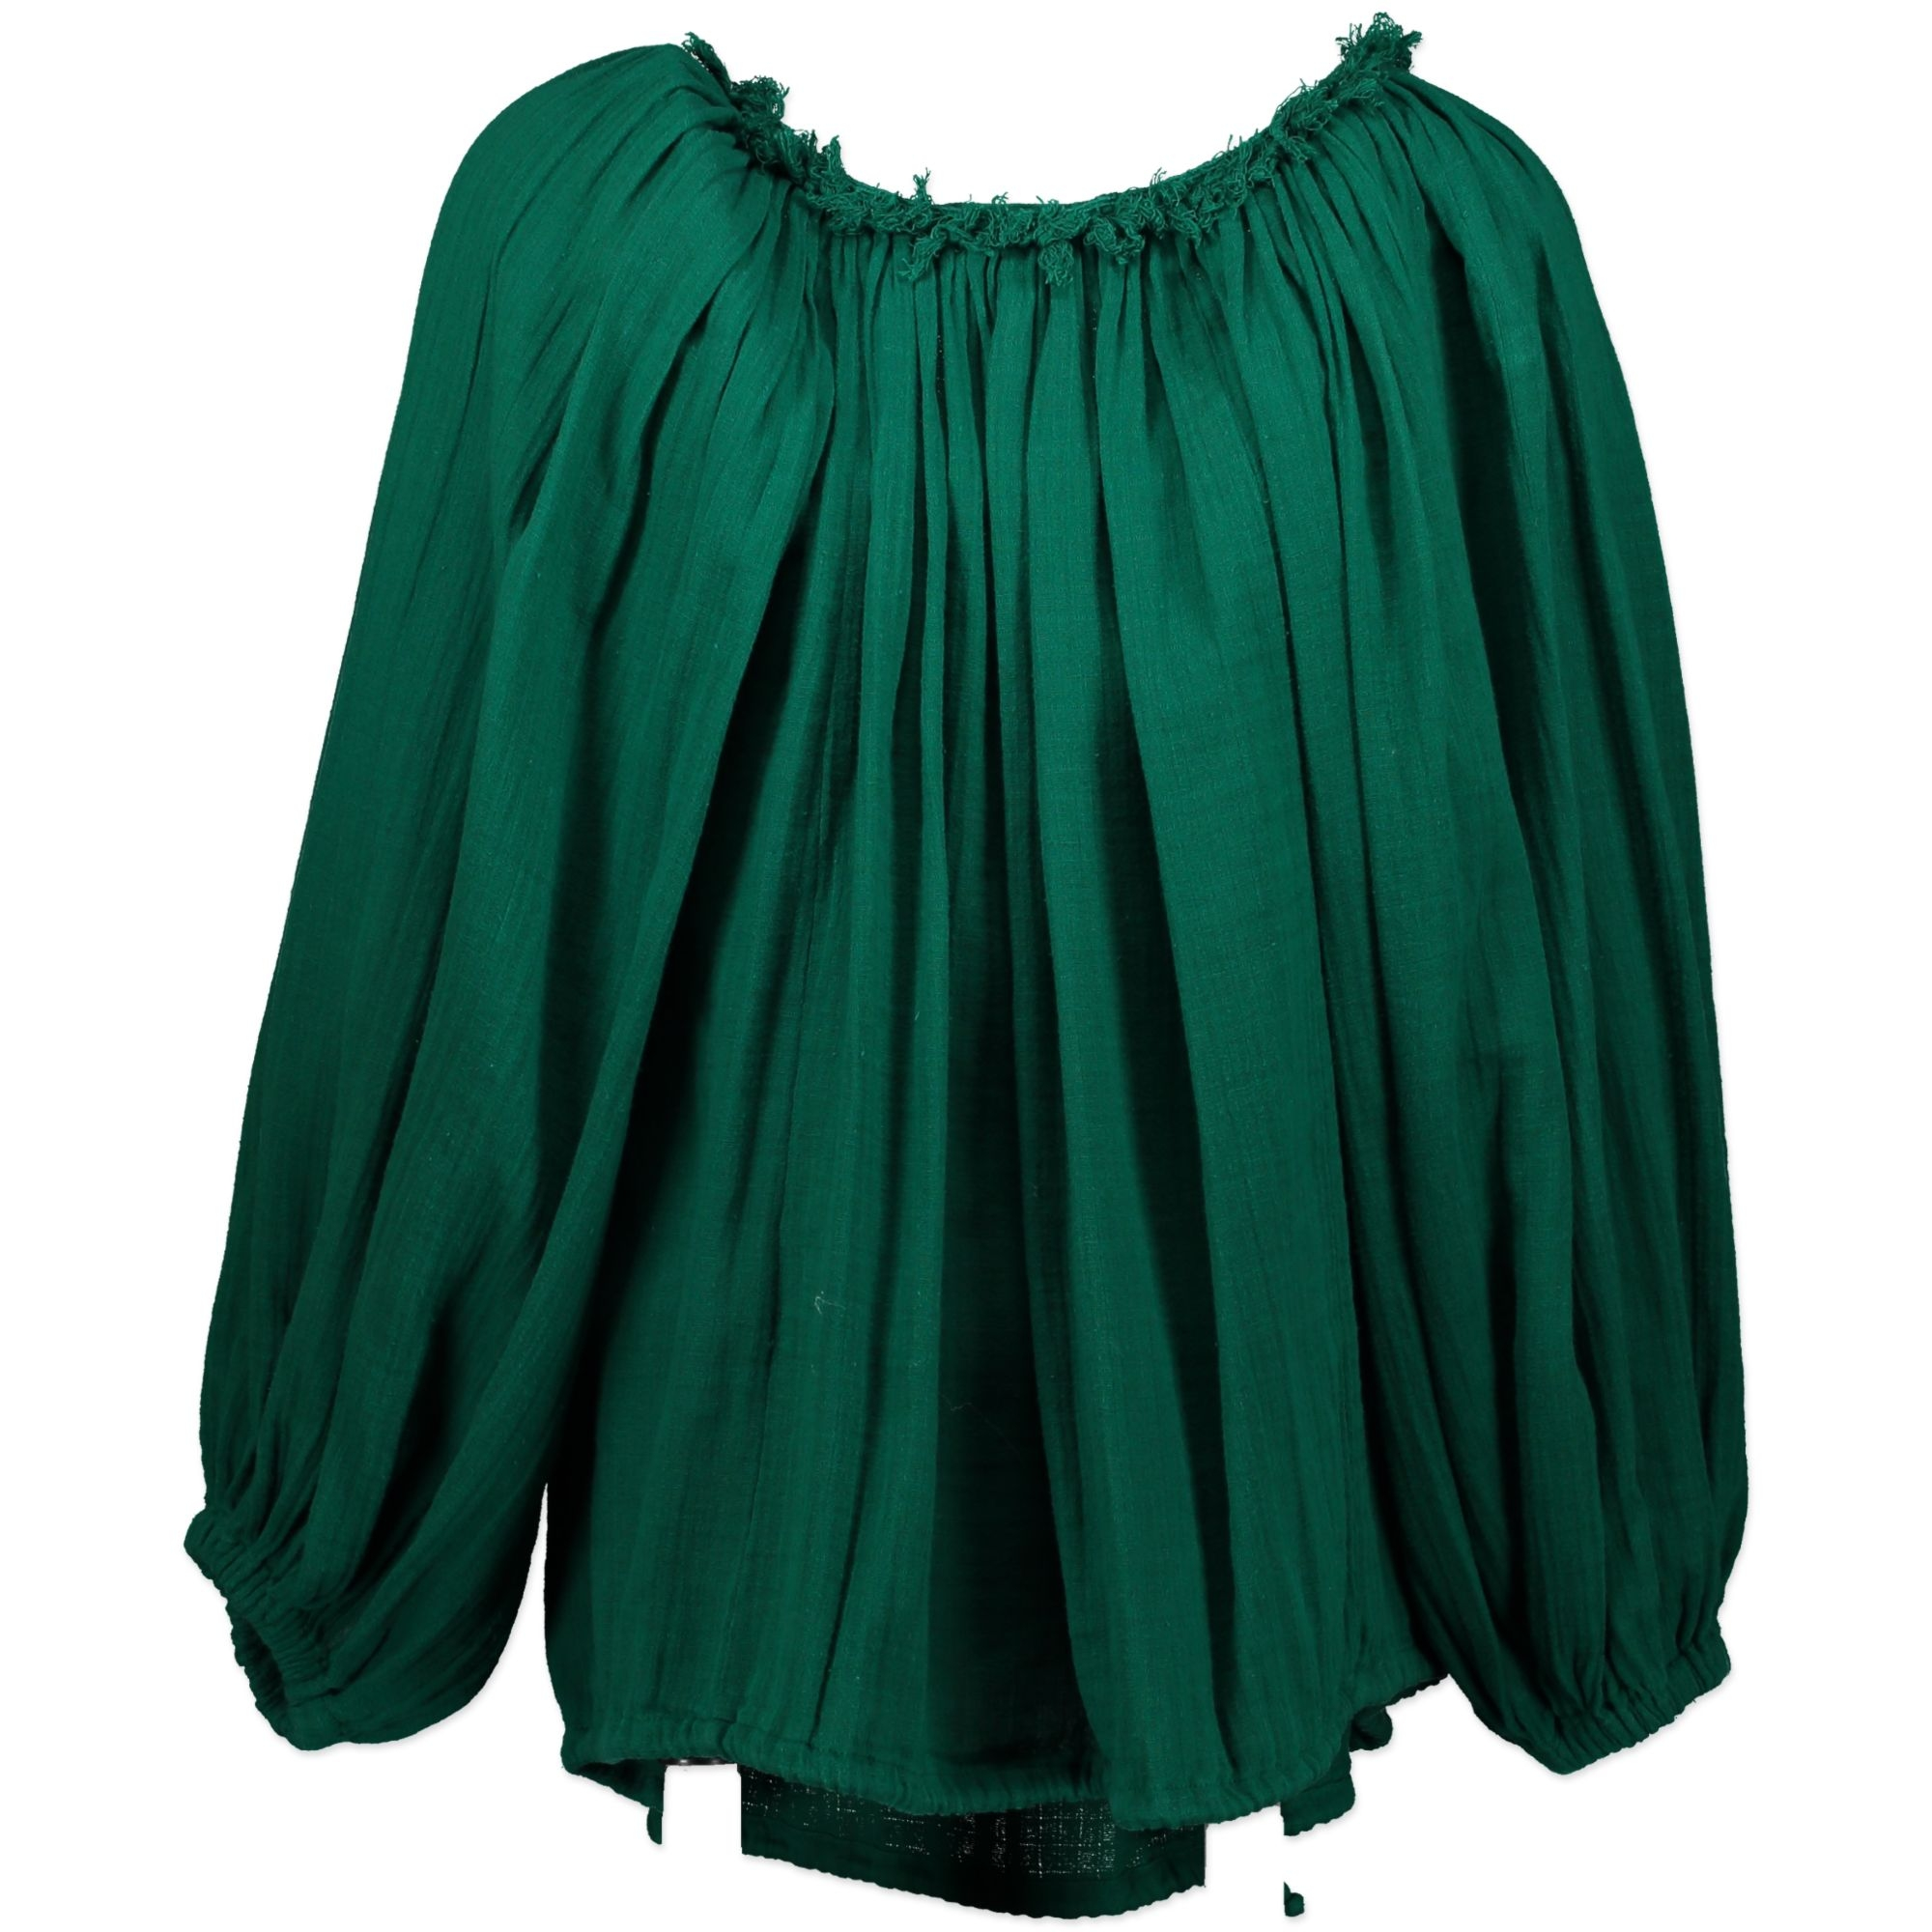 Authentique seconde main Isabel Marant Etoile Green Blouse chez webshop LabelLOV